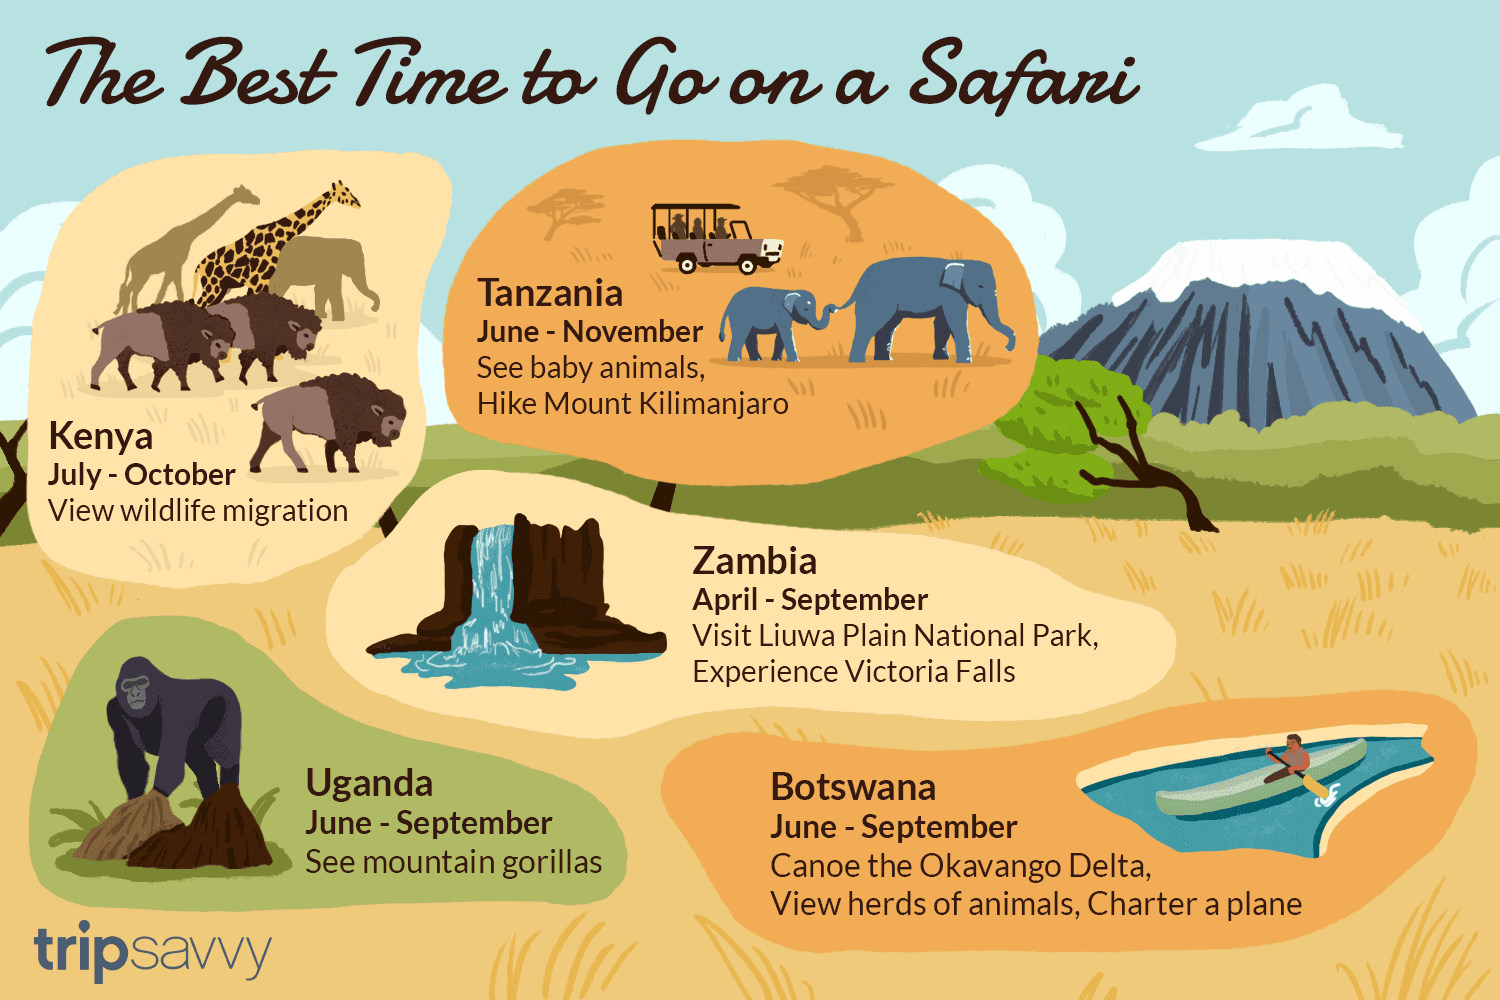 The Best Time to Go on Safari